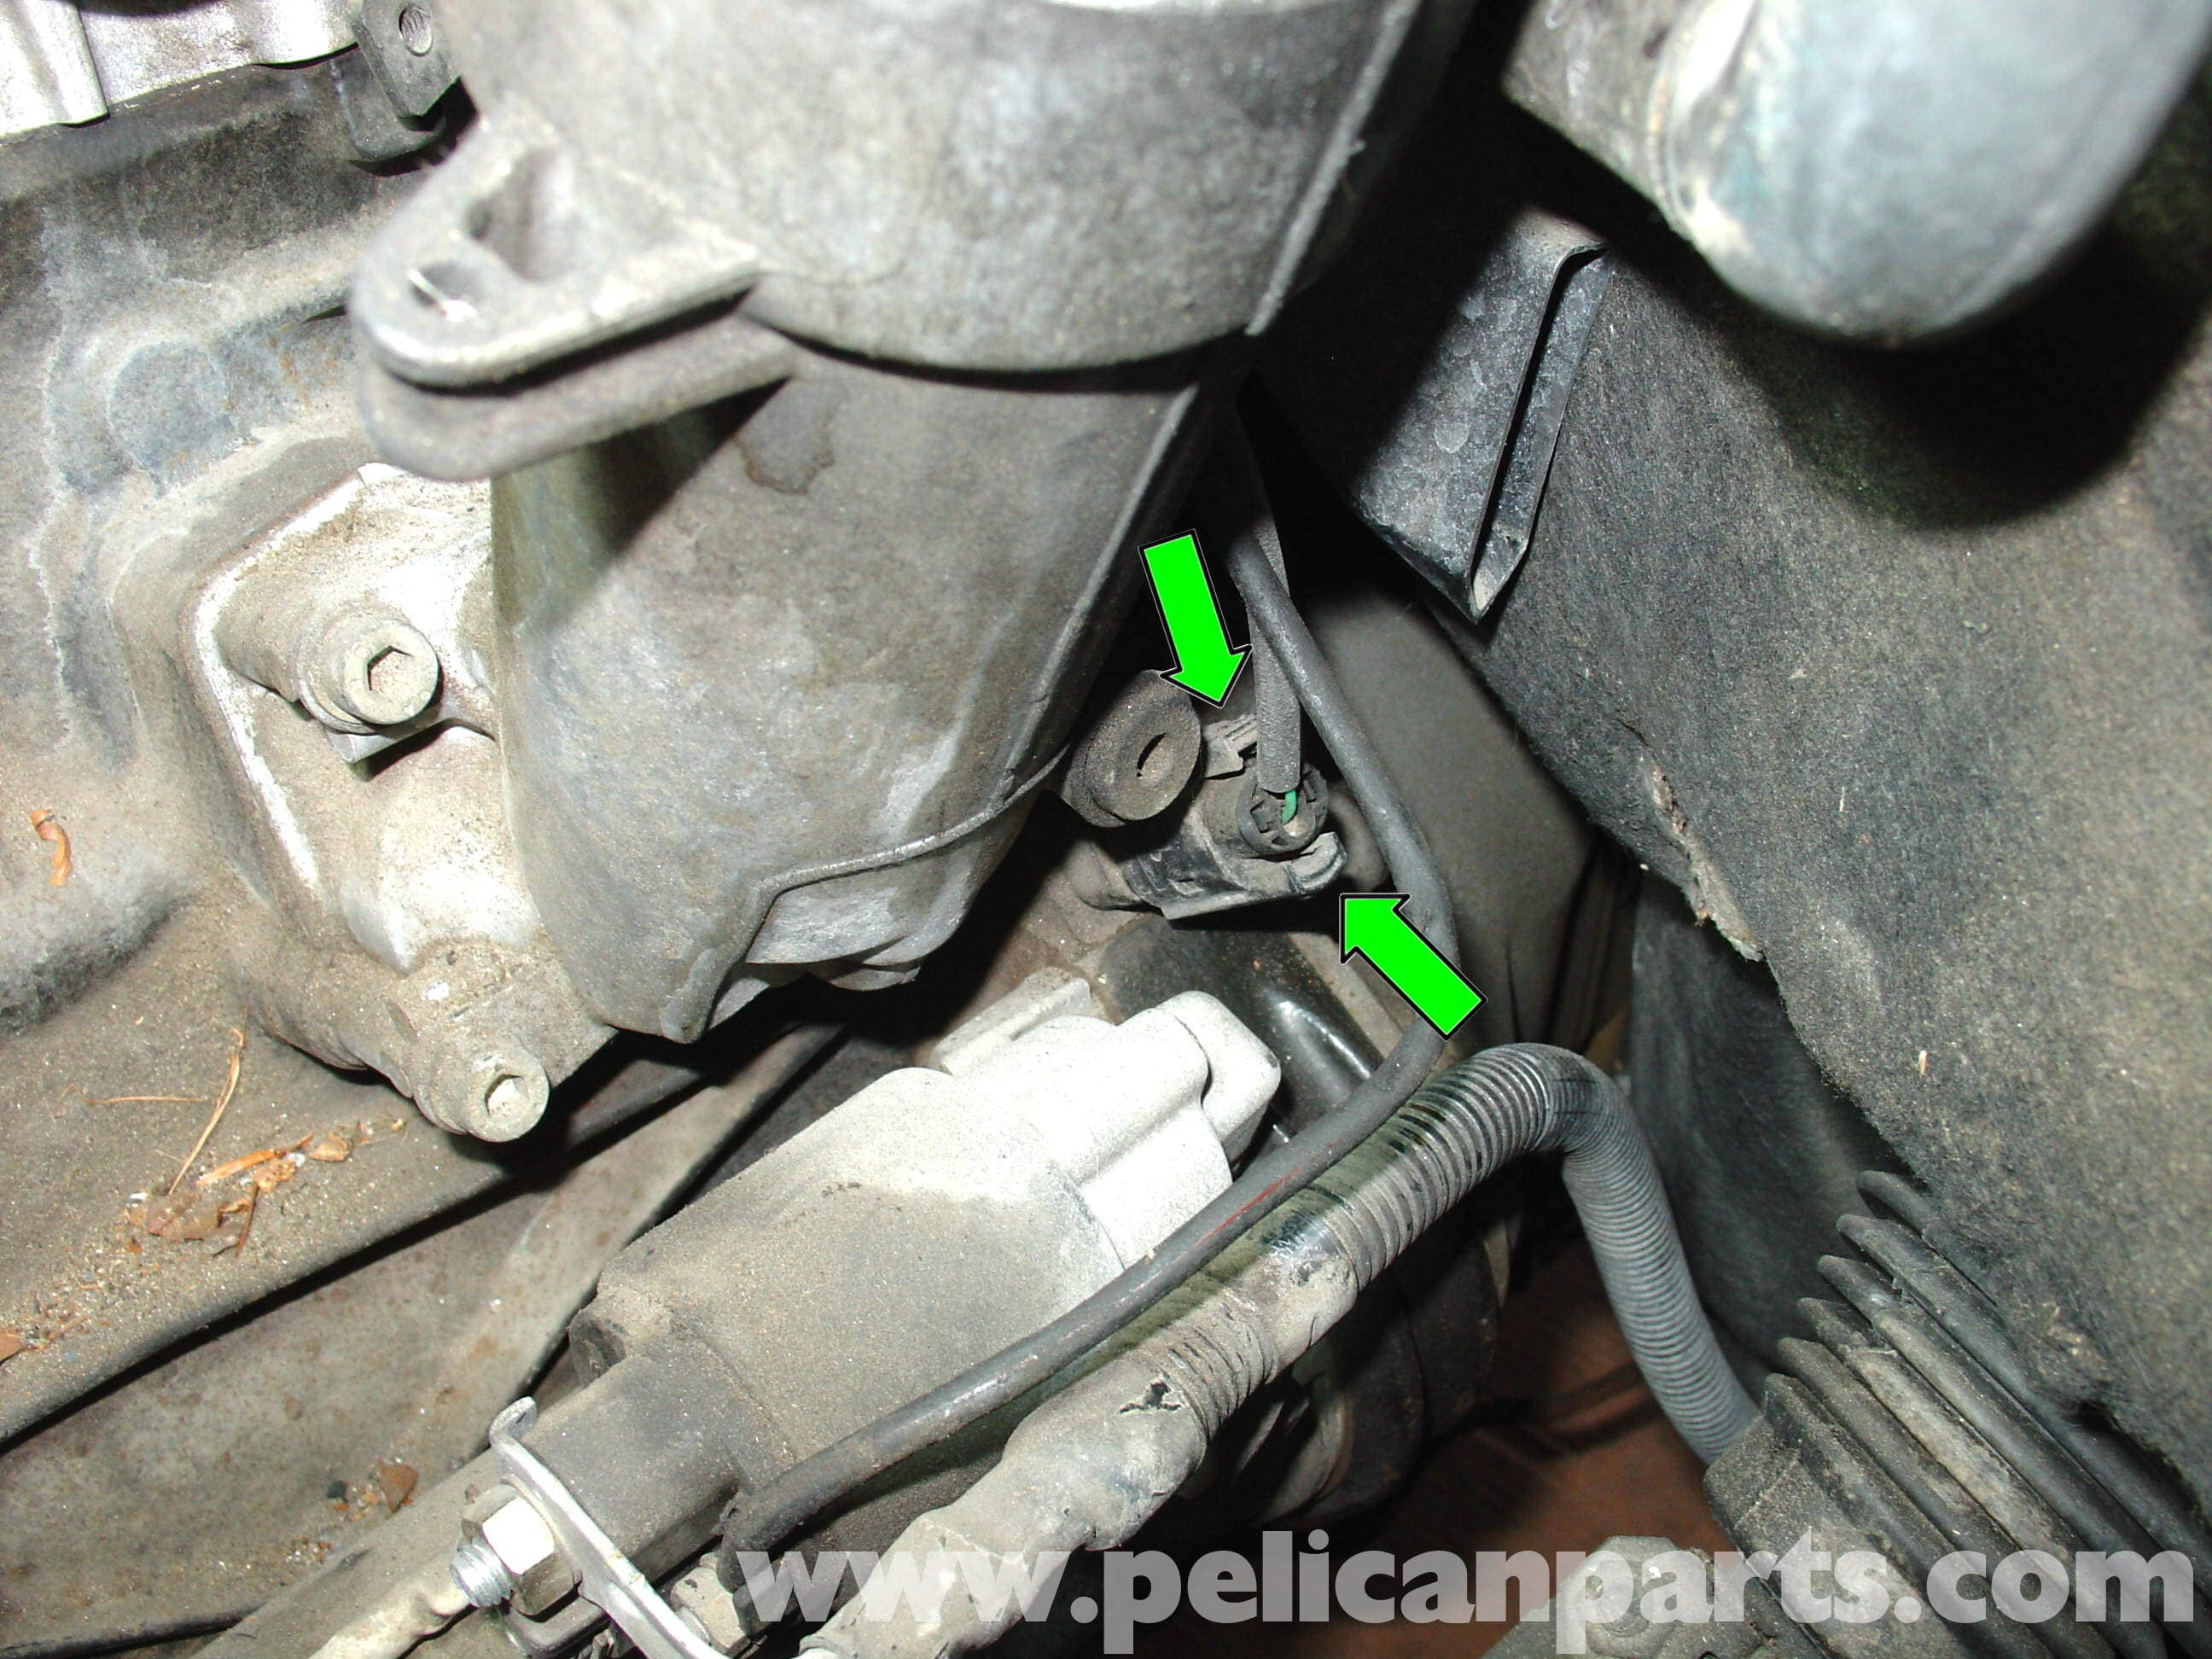 07 ENGINE Crankshaft Position Sensor Replacement on 2005 toyota tundra oxygen sensor location